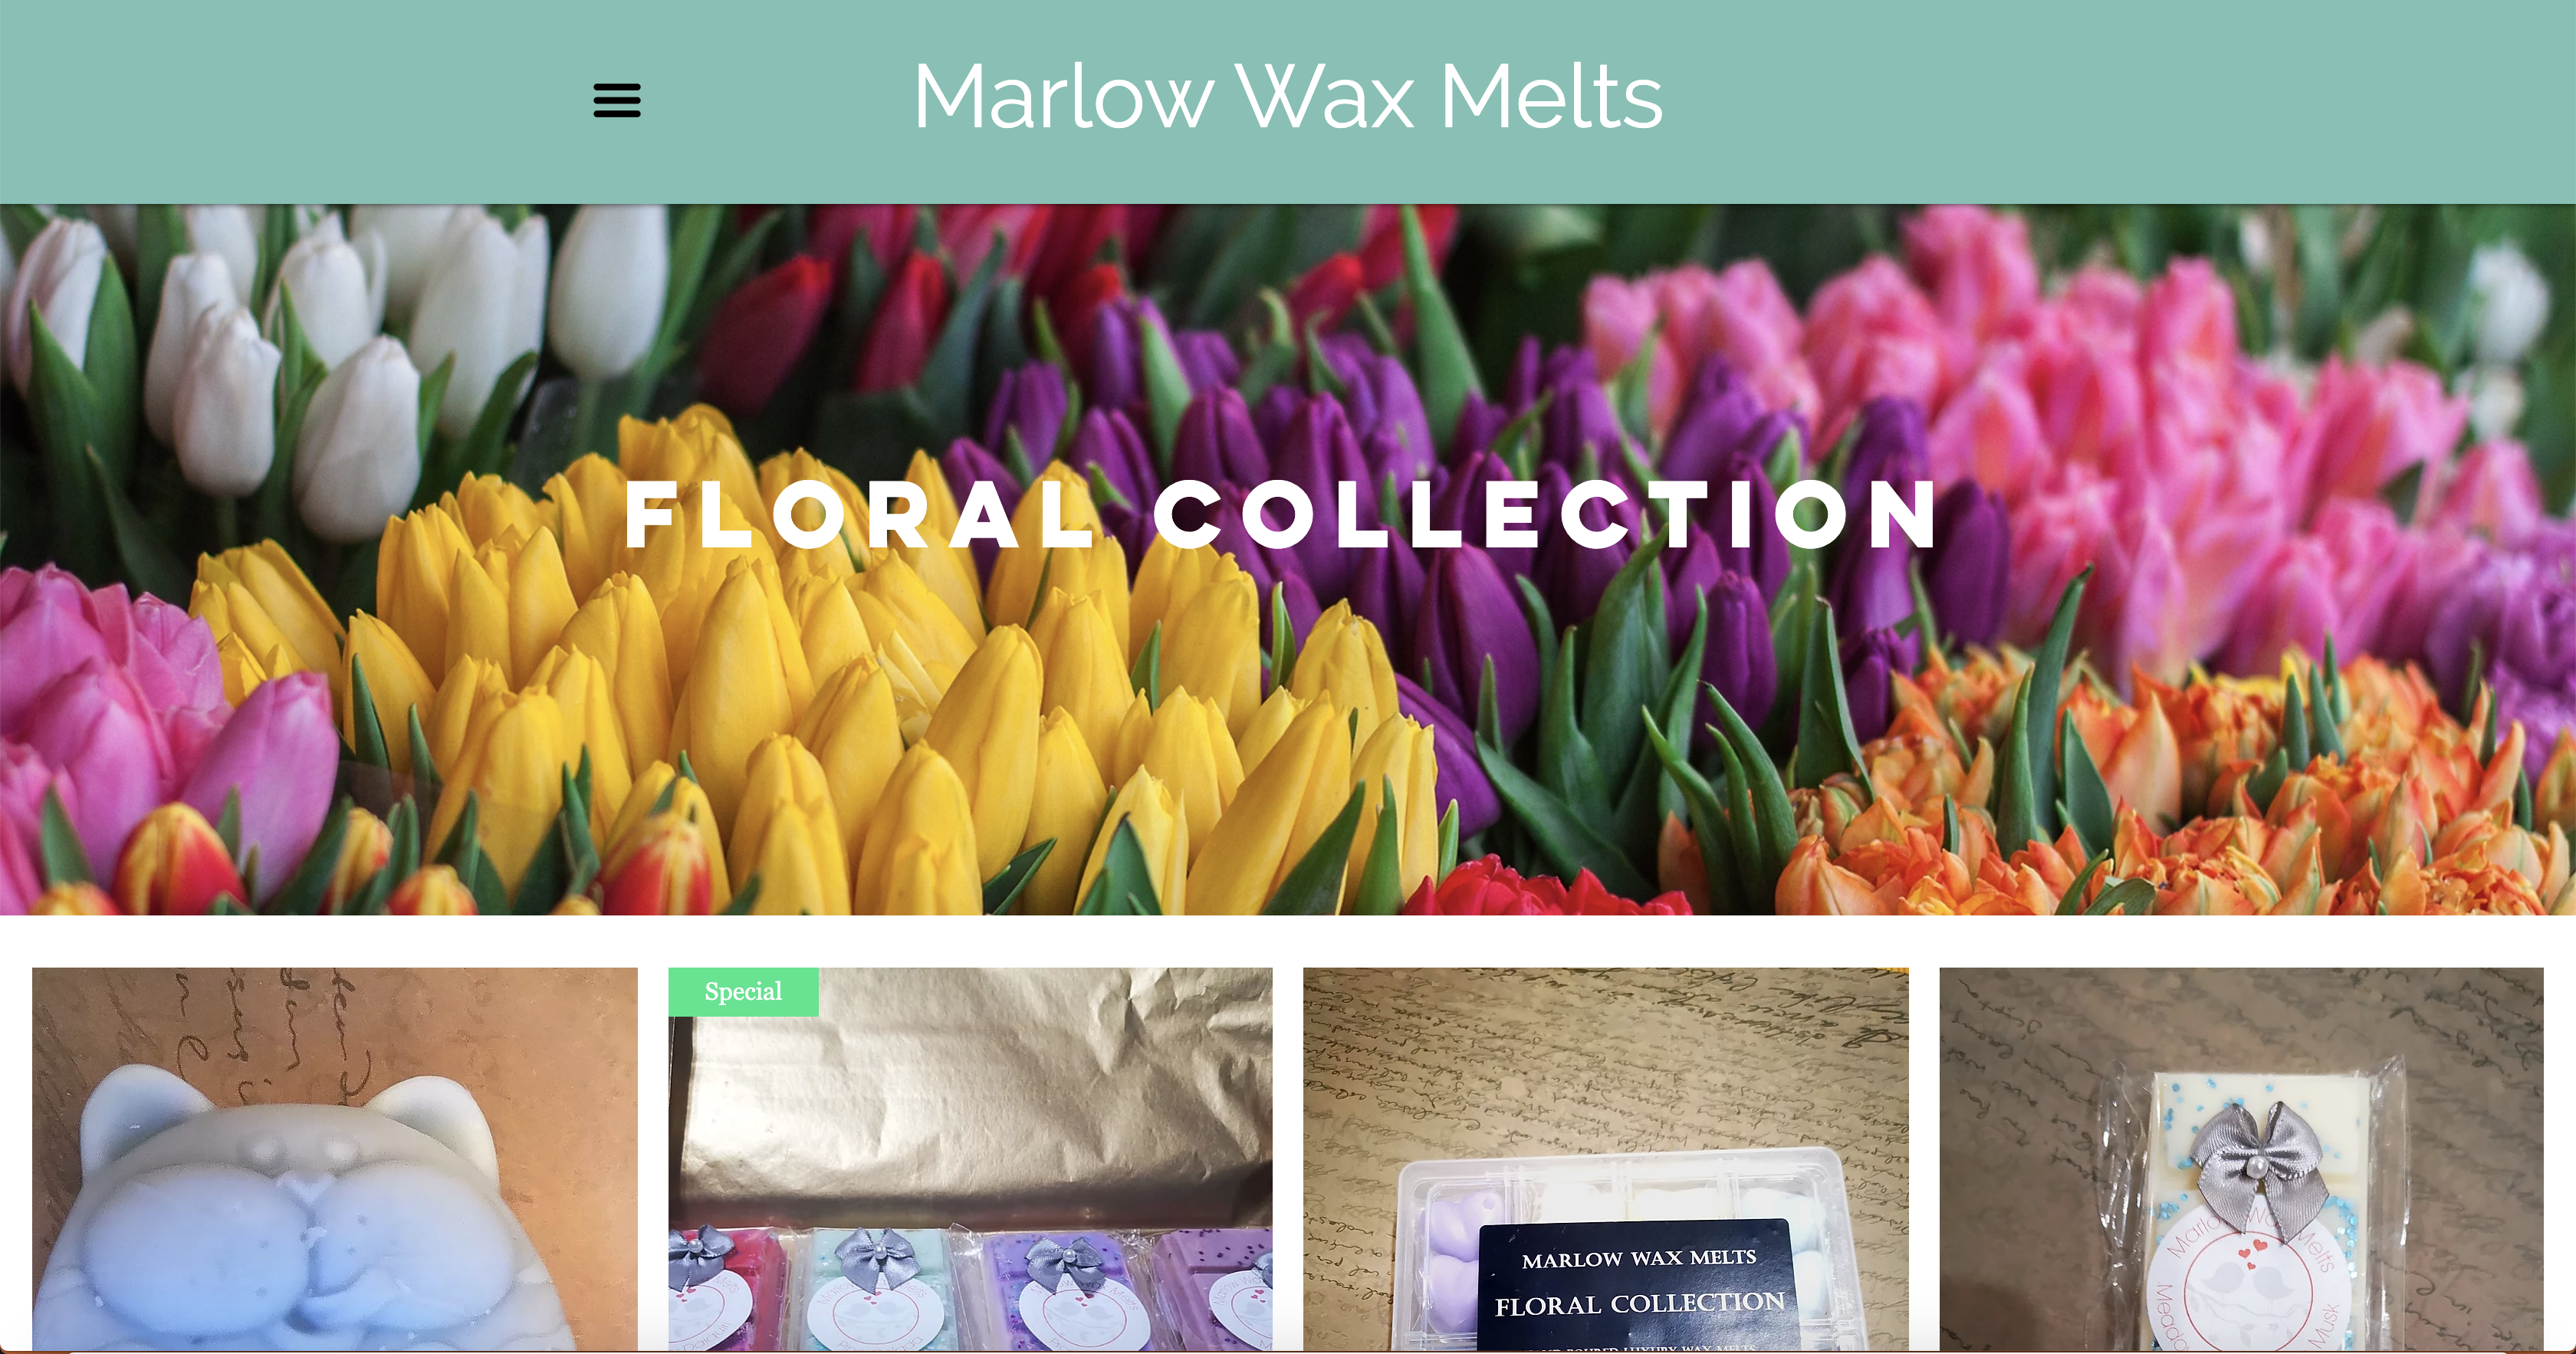 Marlow Wax Melts | Product page